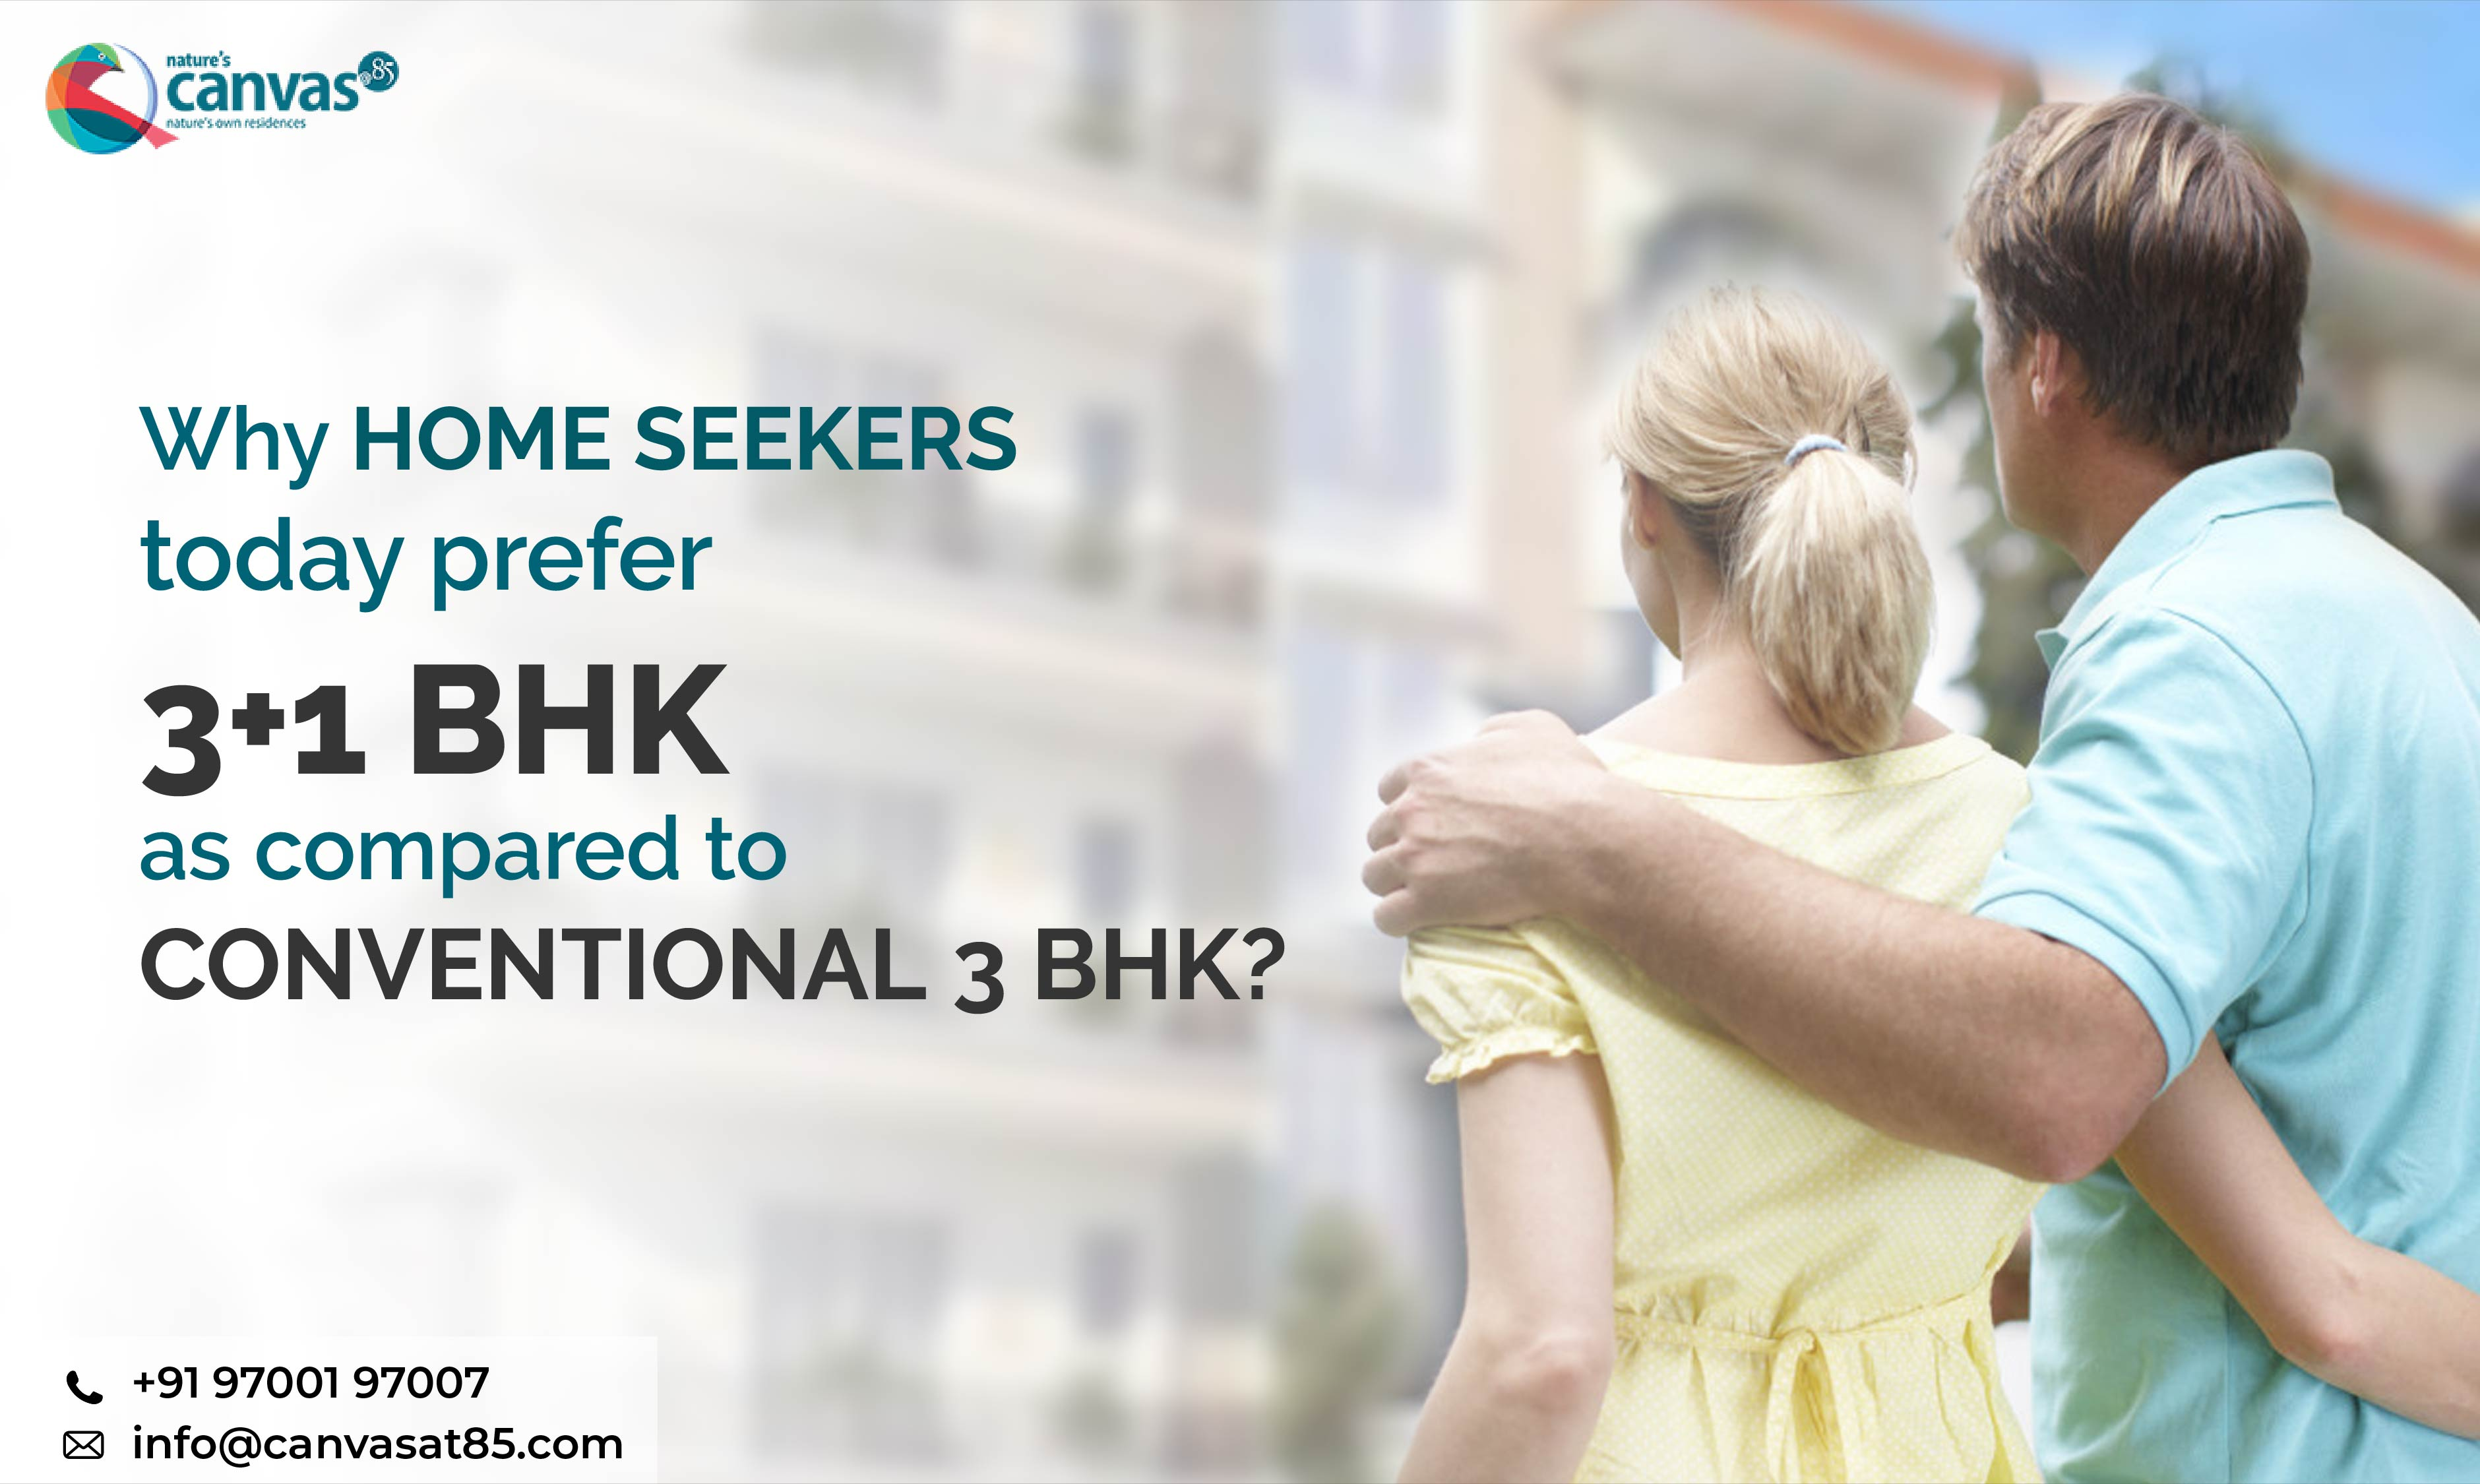 home seekers today prefer 3+1 BHK